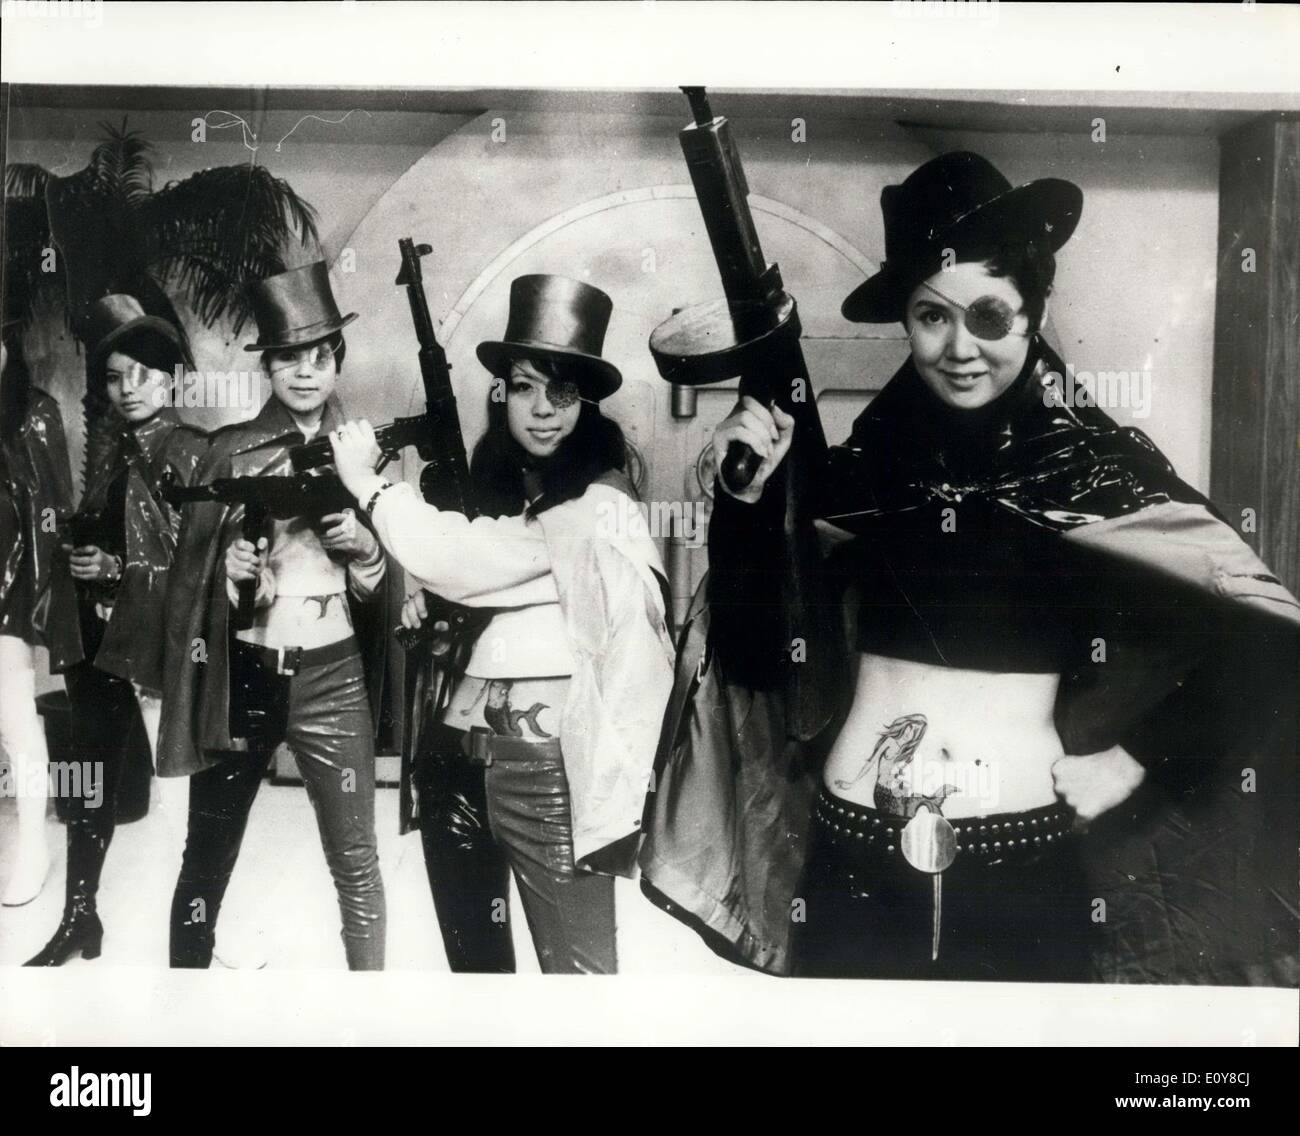 Apr. 29, 1969 - Satirical Gangster film made in Japan. Japanese girls wearing coloured plastic capes and pants, transparent covers over one eye, Tommy - guns and a mermaid tattooed on their stomachs, features in new movie named ''Let's Ge. Drifters'' being made in Japan by the Toho film Company. The satirical film underlines the ease in which bank robberies have taken place in Japan recently, one lone robber dressed as a motorcycle the bank employees in the car carrying the cash, that a time bomb was planted beneath the car, and he had been dispatched to warn them - Stock Image